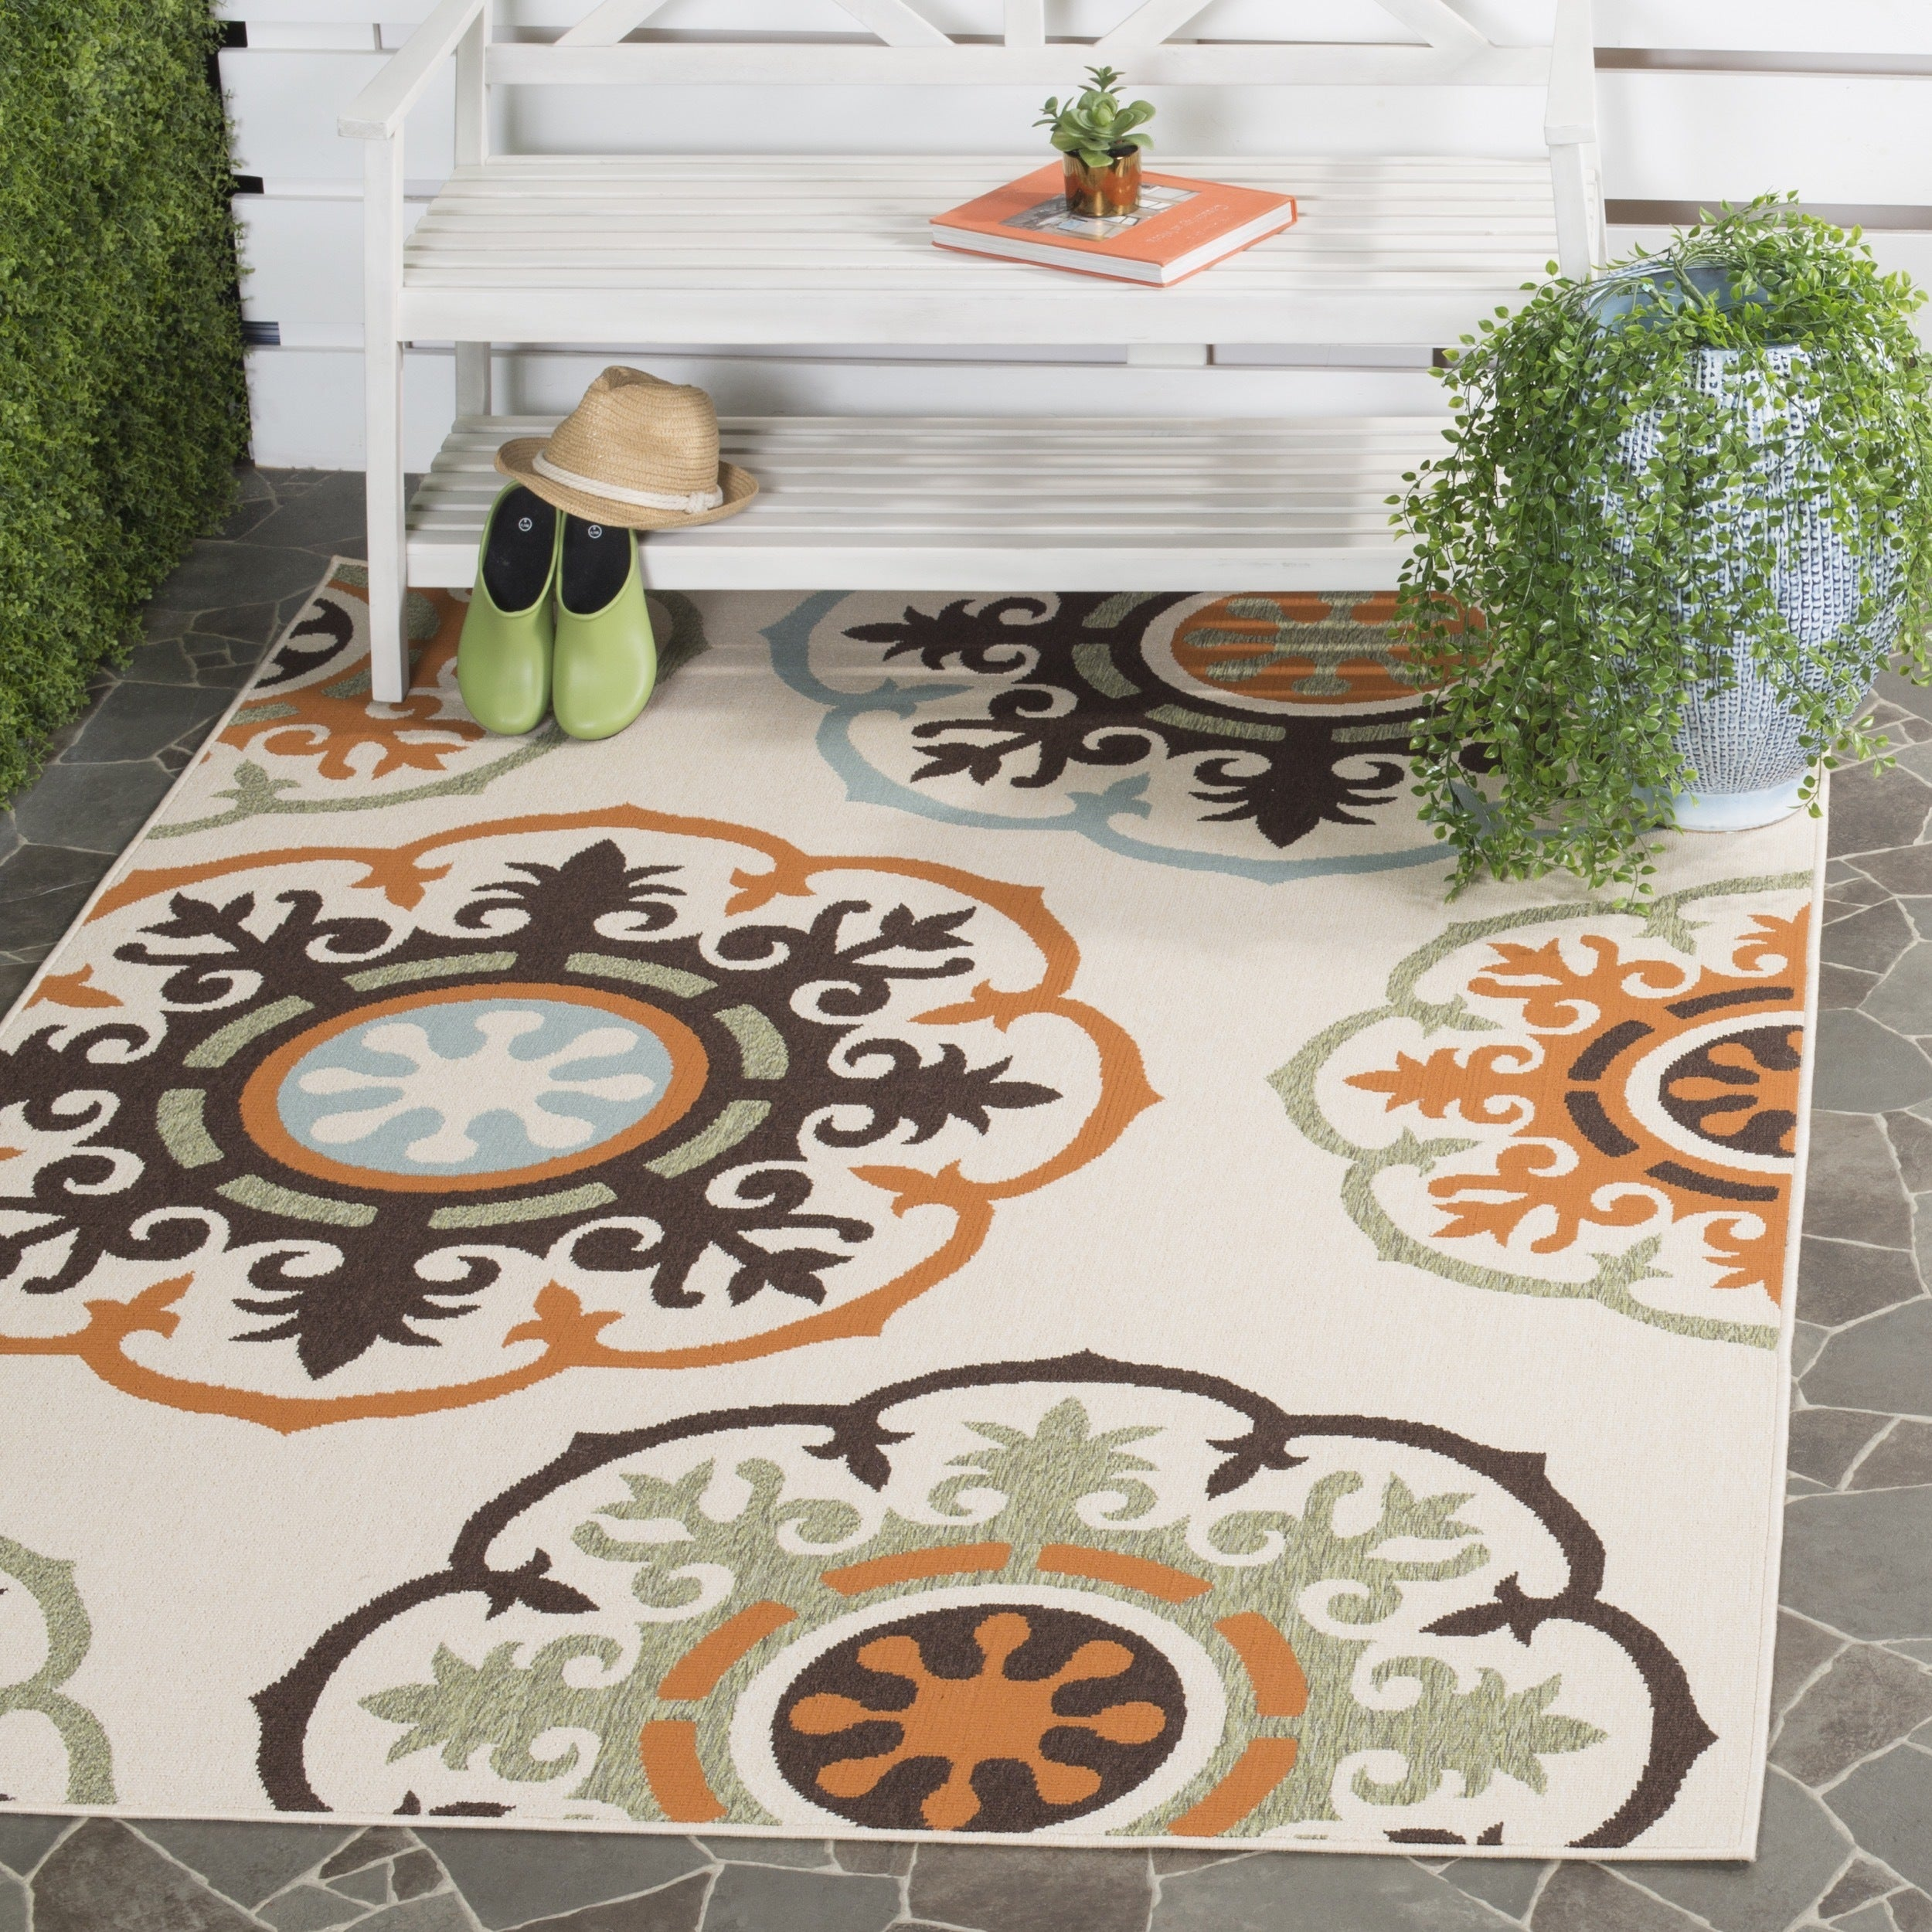 Safavieh Veranda Piled Indoor/Outdoor Cream/Terracotta Polypropylene Rug  (6'7